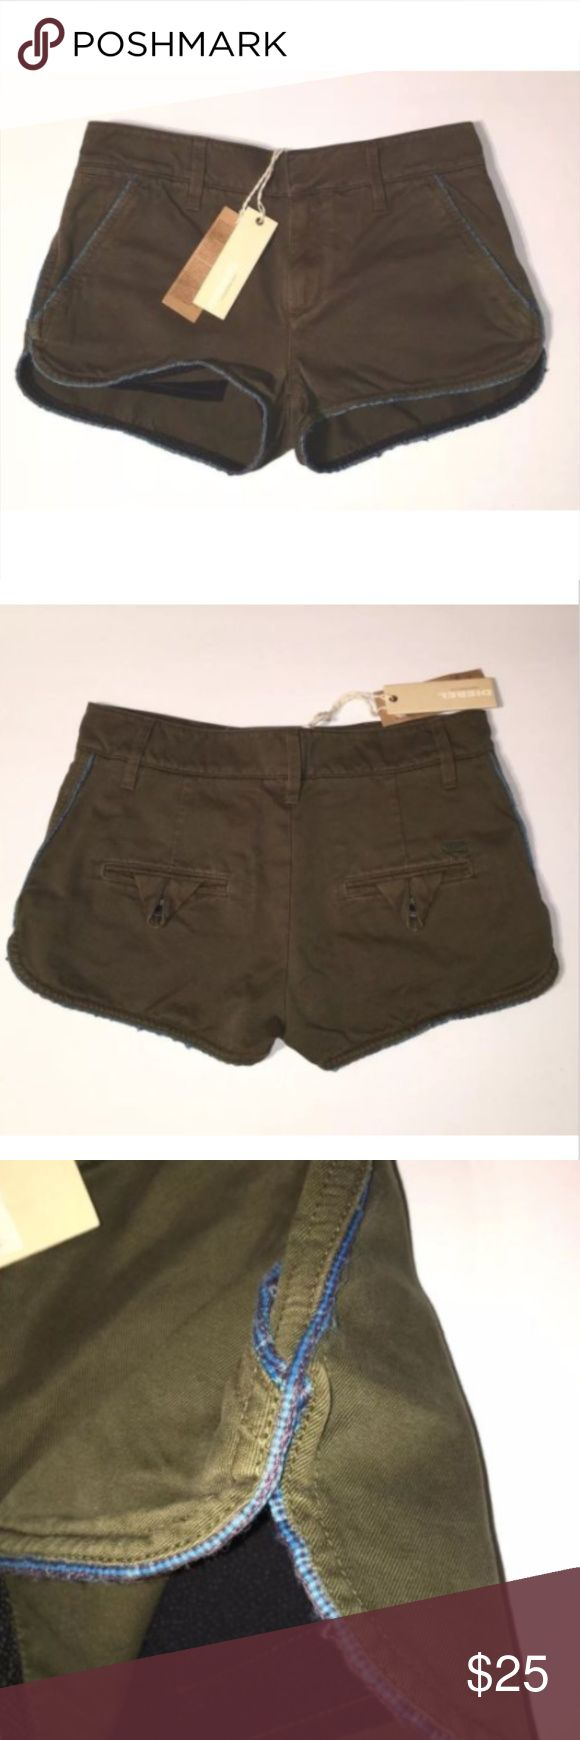 """Diesel Baskebi Shorts Army Green Shorts Sz 25 New with Tags DIESEL """"Baskebi"""" Olive Green Shorts Army green with blue trim Shirttail hem at outer thigh Size 25 Waist laid flat: 15"""" Length from waist at front: 9.5"""" Length from waist at back: 10.5"""" Back rise 13"""" Front rise 9"""" Inseam: 1.5"""" Zip fly with hook and eye closure Belt loops Diesel Shorts"""